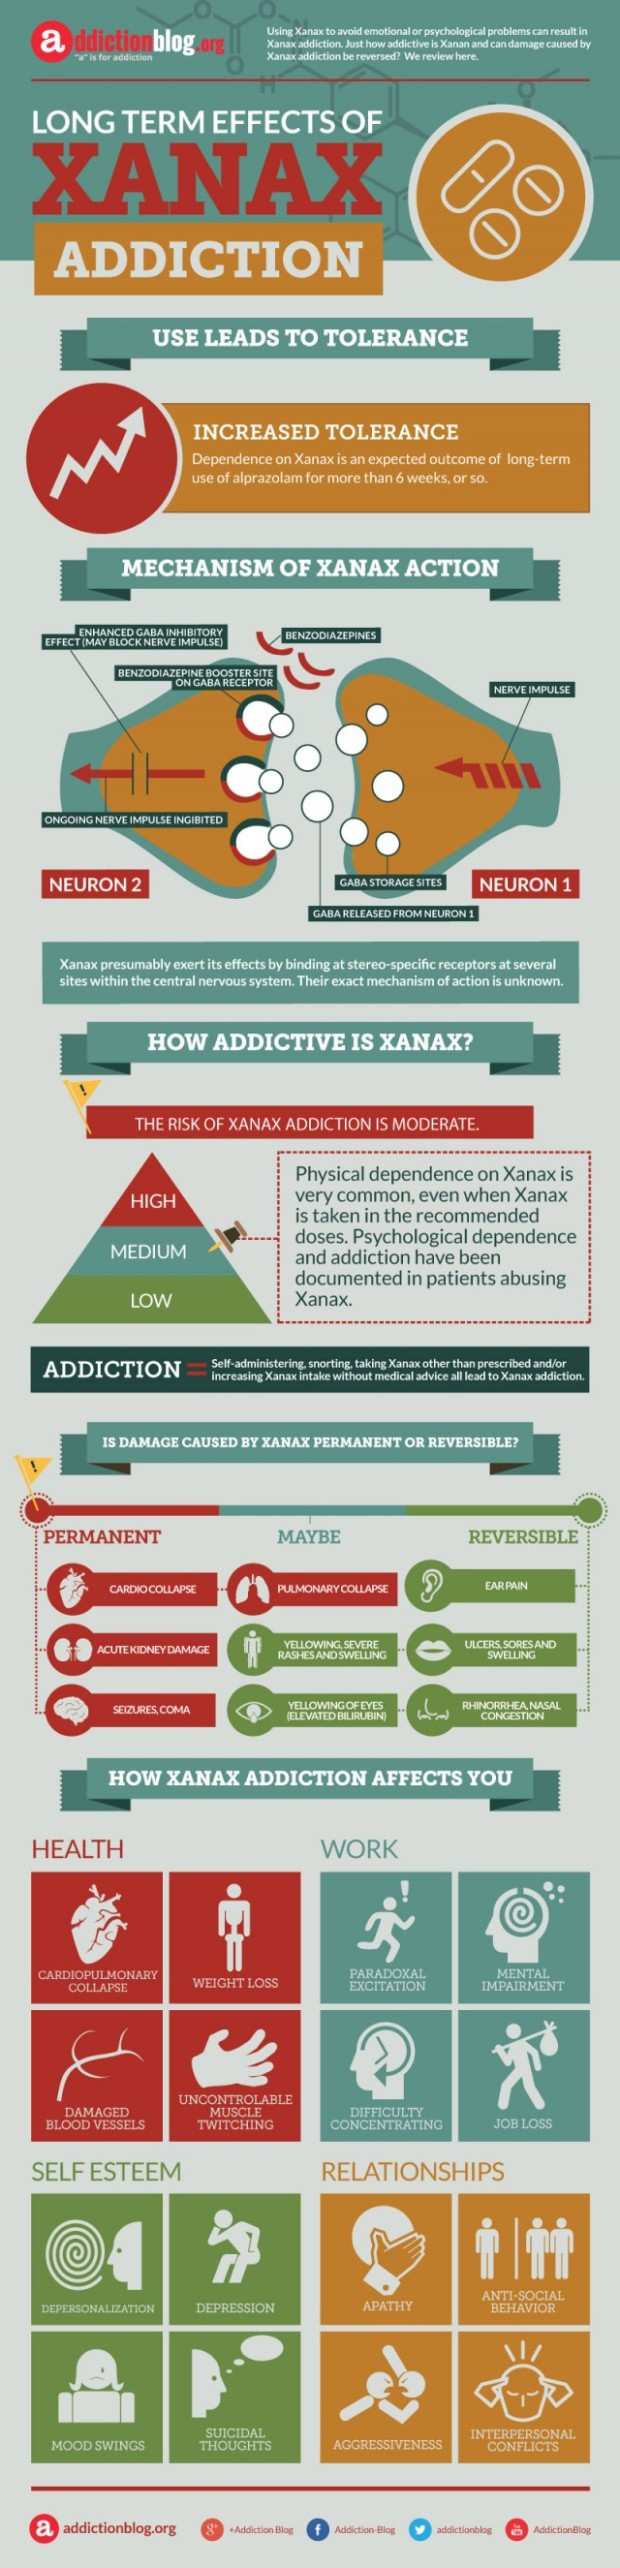 Xanax Addiction Symptoms: How To Tell If You're Hooked ...